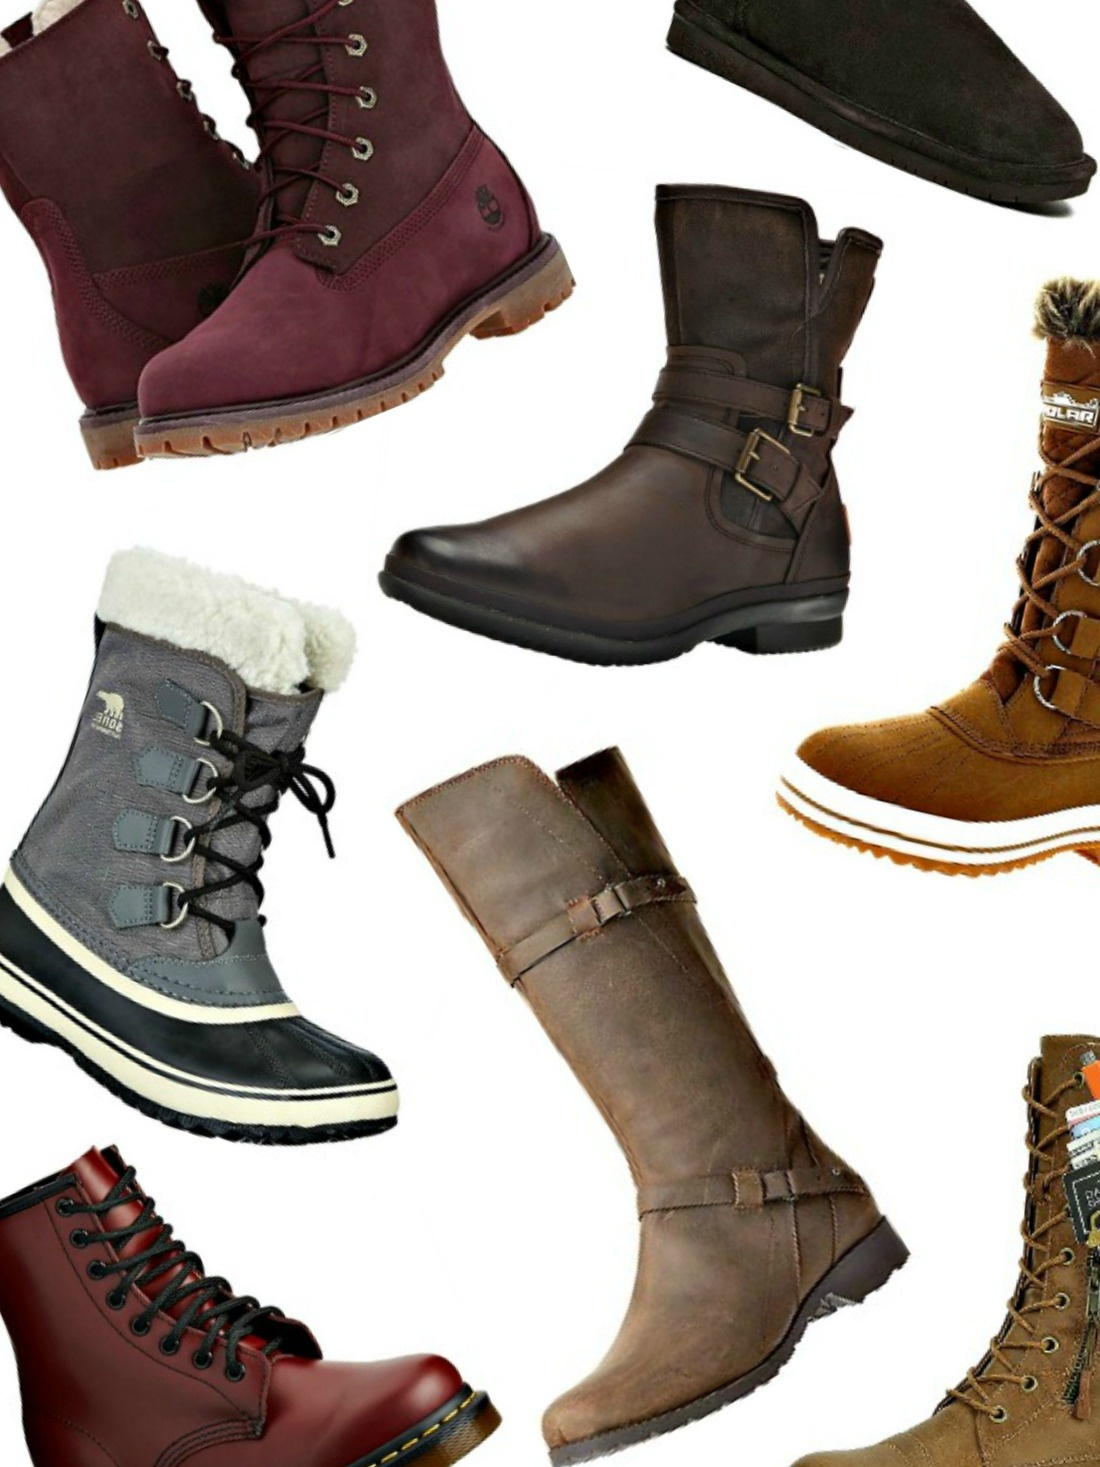 Looking for the best winter boots for women that will keep you warm and cozy this season? Check out these top brands on Amazon!